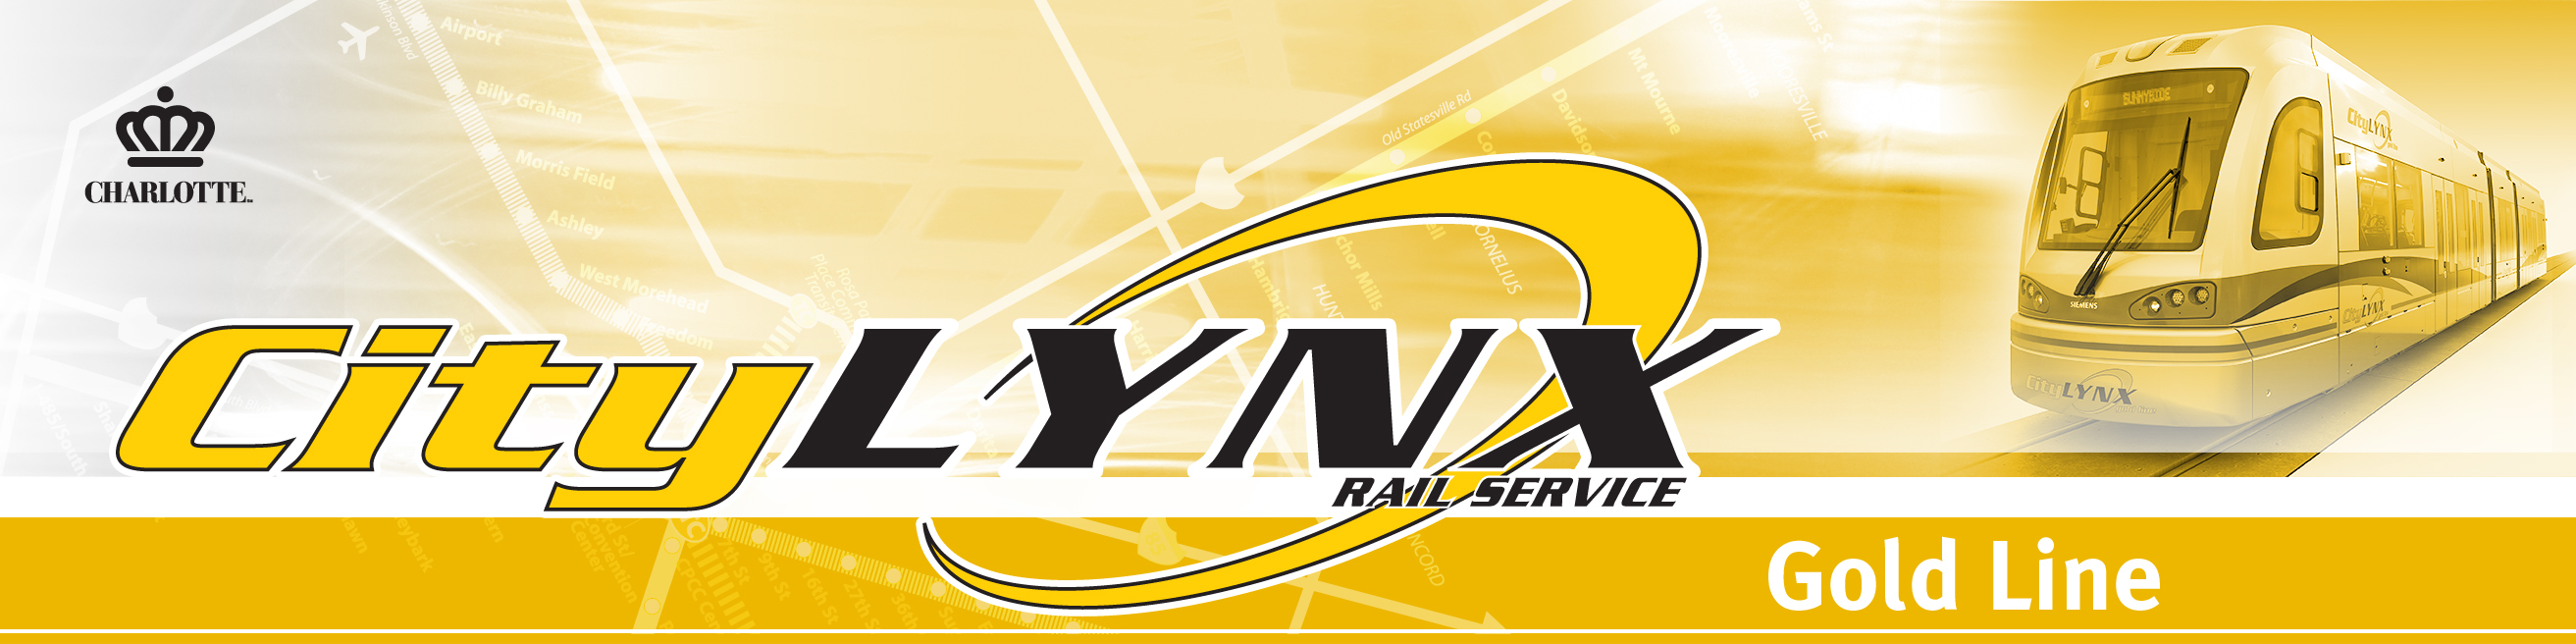 CityLYNX Gold Line Page banner with image of streetcar in Gold tint